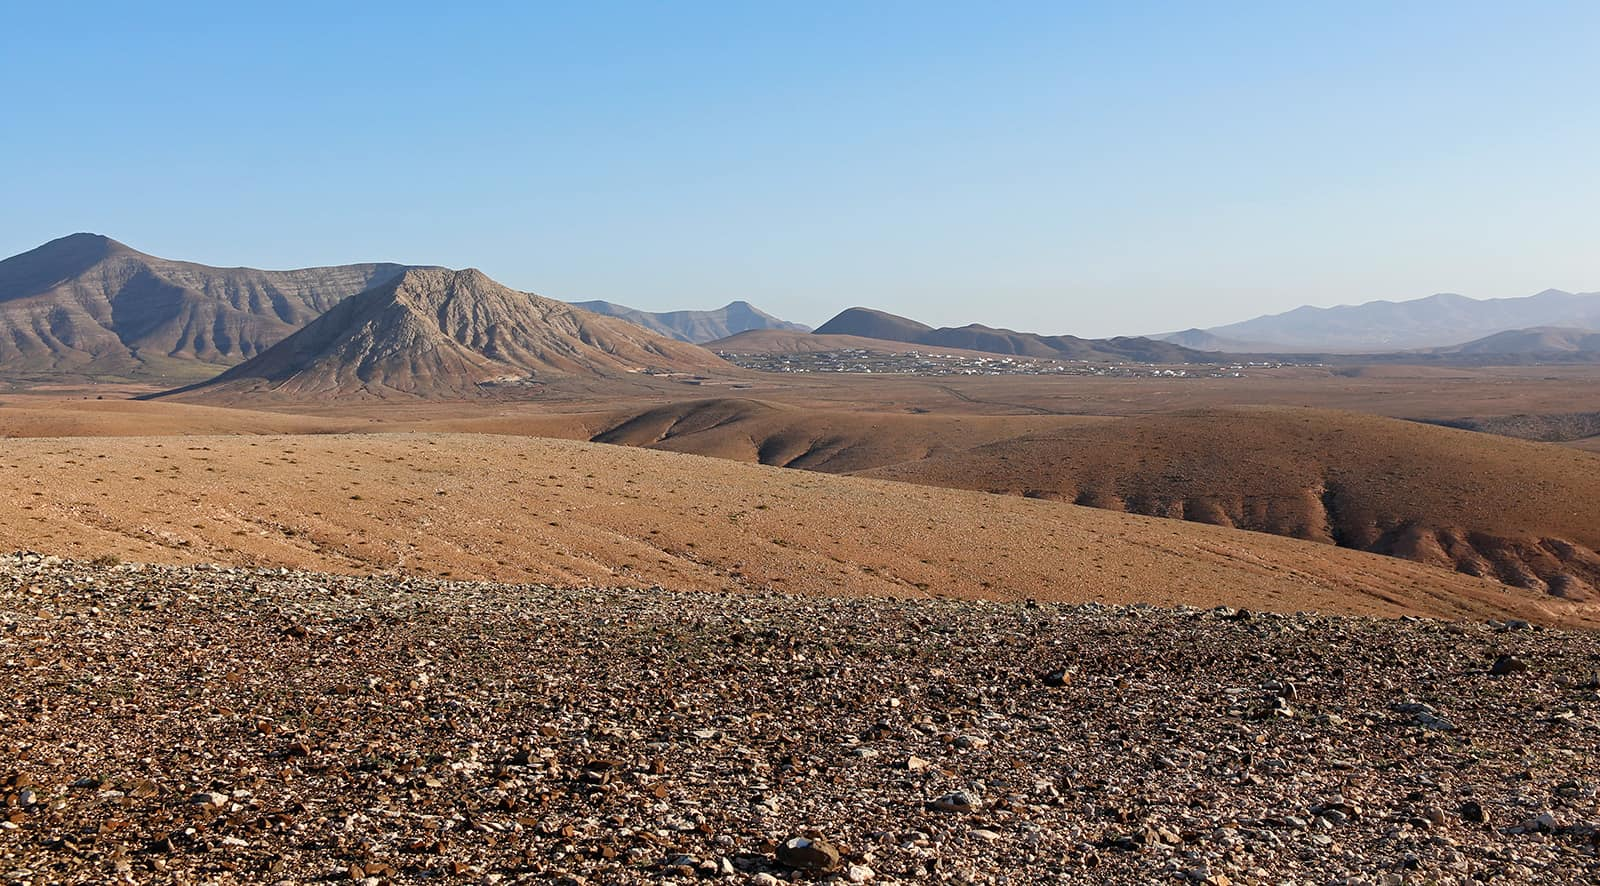 This is on the way back from the canyon but this is also how 99% of Fuerteventura looks like.